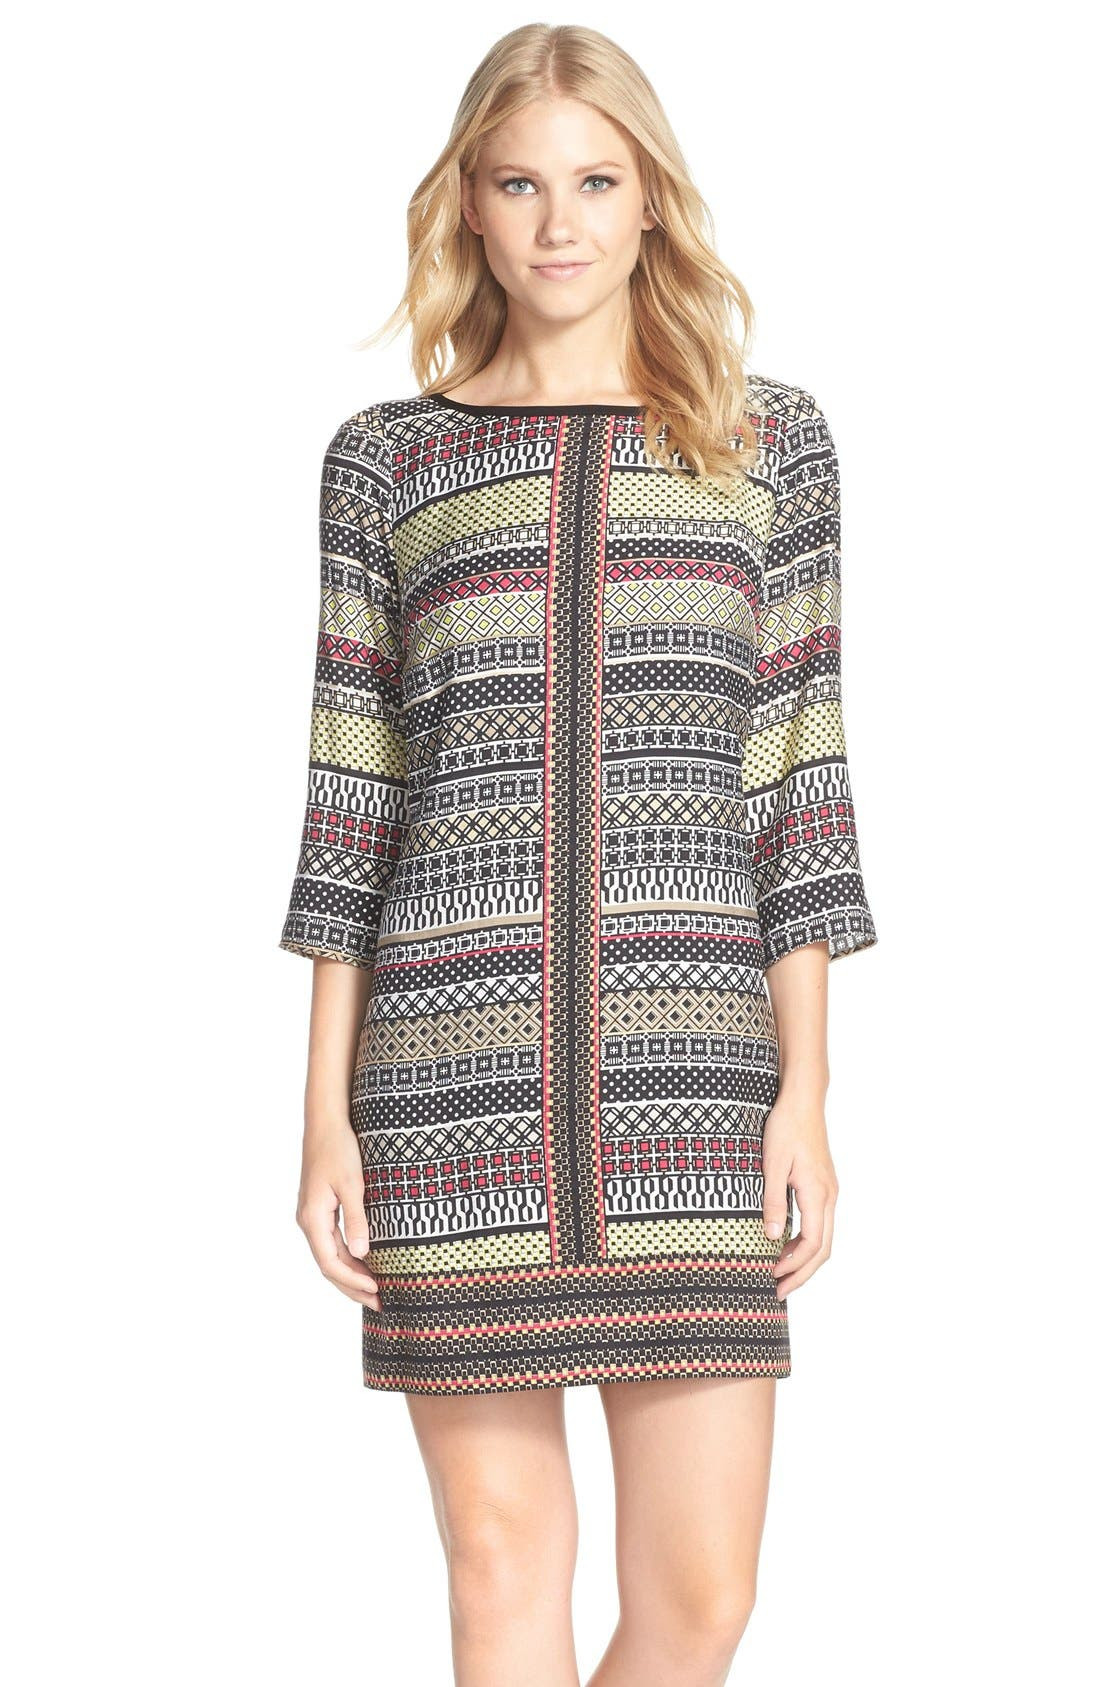 Main Image - Laundry by Shelli Segal Print Twill A-Line Dress (Regular & Petite)